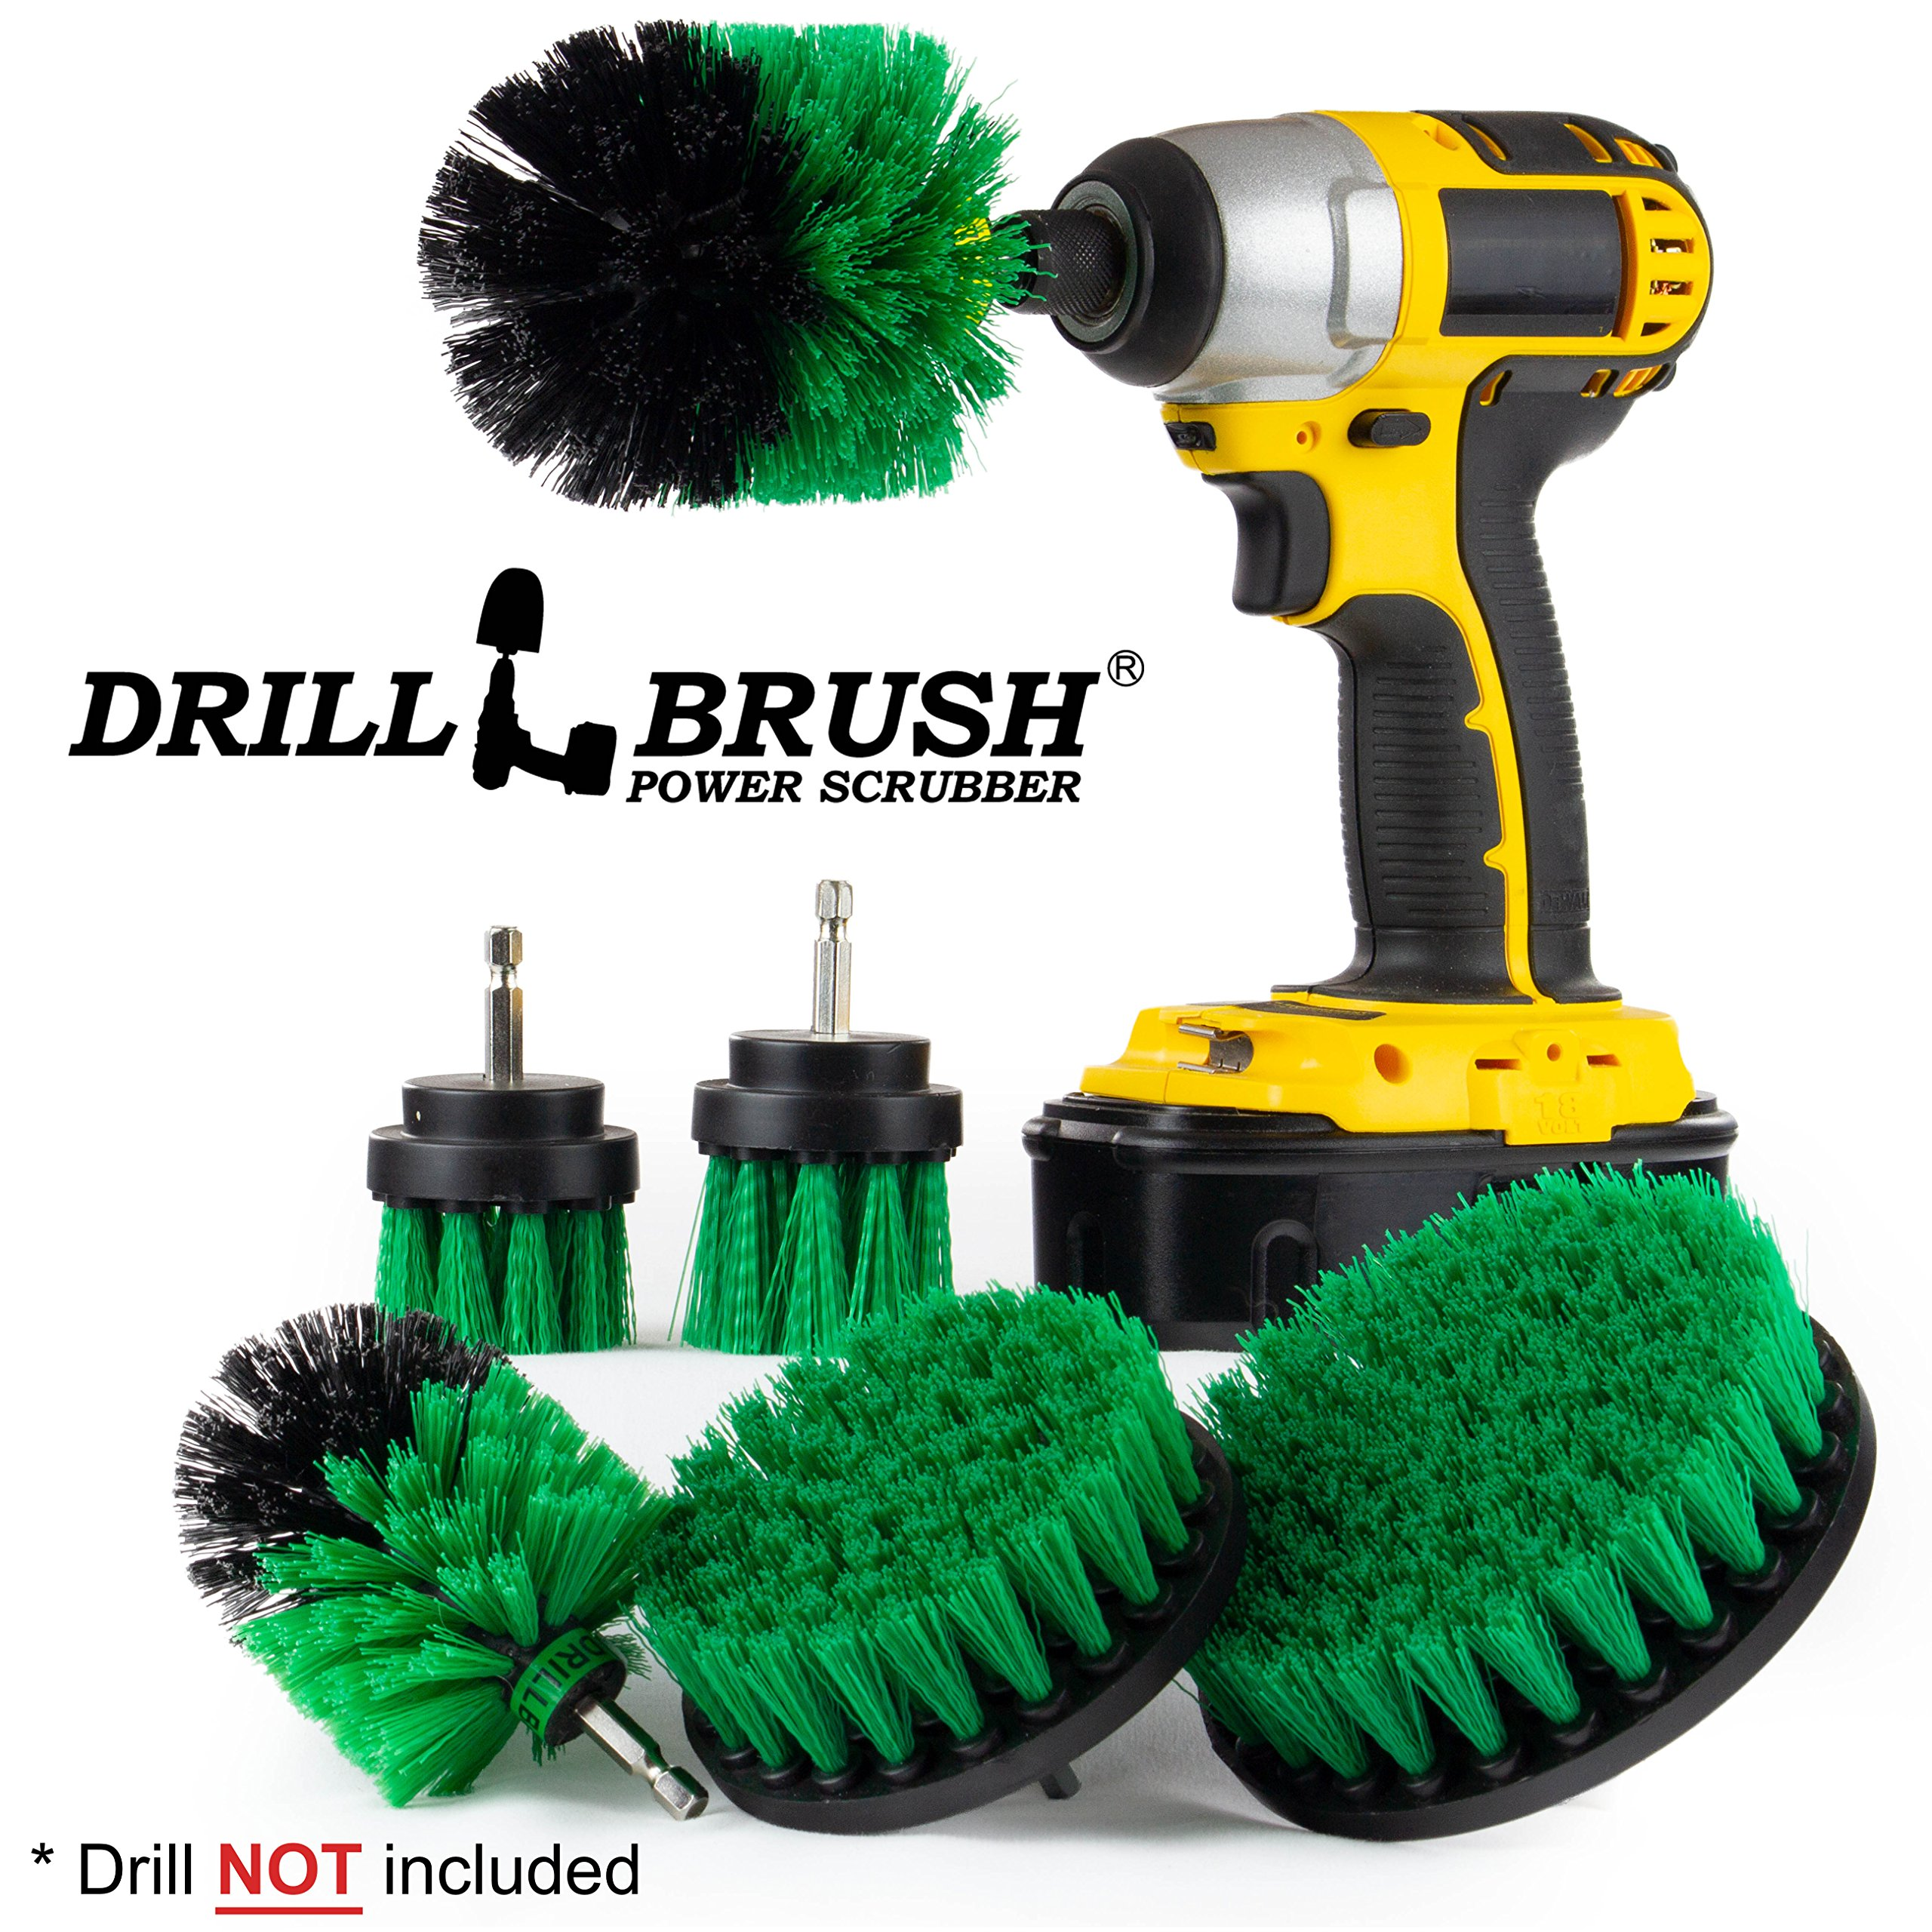 The Ultimate Kitchen Cleaning Supplies Drill Brush Attachment Kit/Kitchen Cleaning Brush Set/Electric Spin Scrubber/Household Cleaners/Counters, Stove, Oven, Sink, Baseboard, Trash Can, Floors